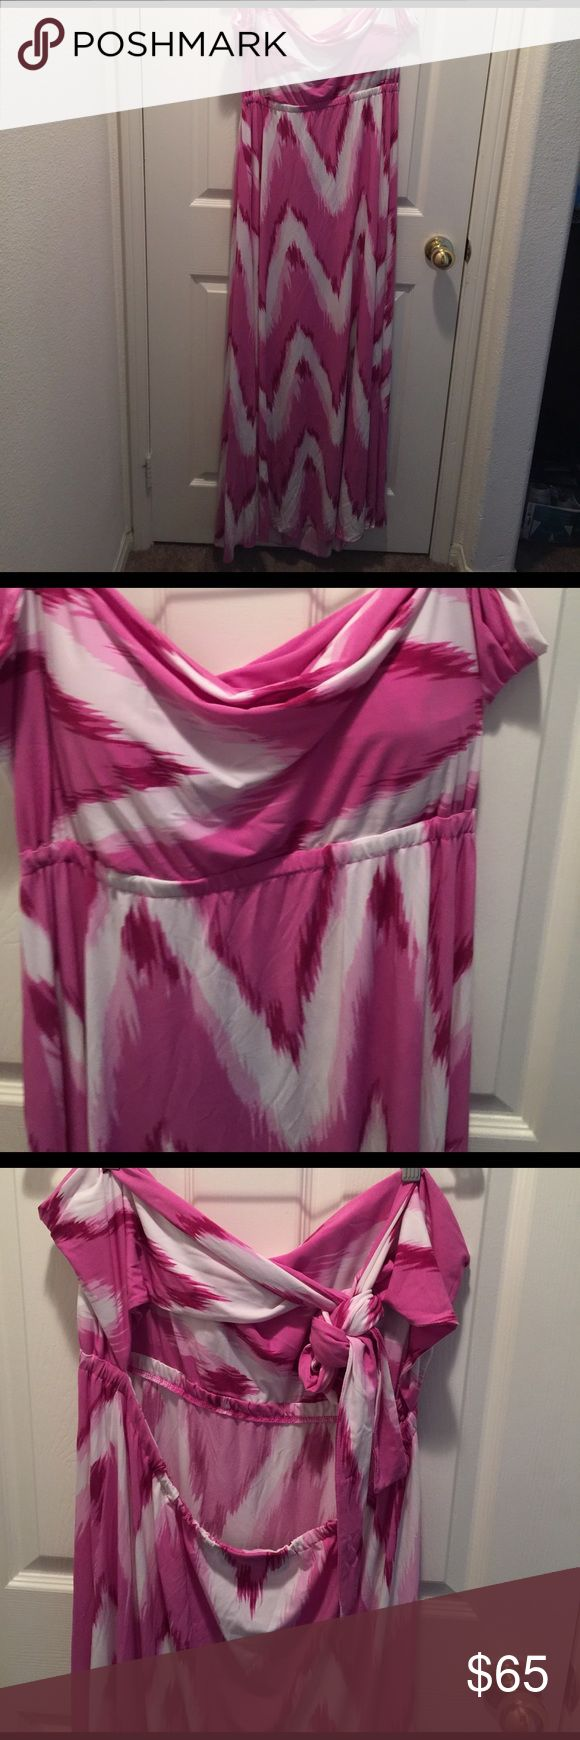 MAXI DRESS HALTER BACK OUT TIES TO GO A FEW WAYS VERY CUTE SEXY DRESS FROM THE (DASH by KARDASHIAN CLOTHING LINE FROM THE Q) Kardashian Kollection Dresses Maxi